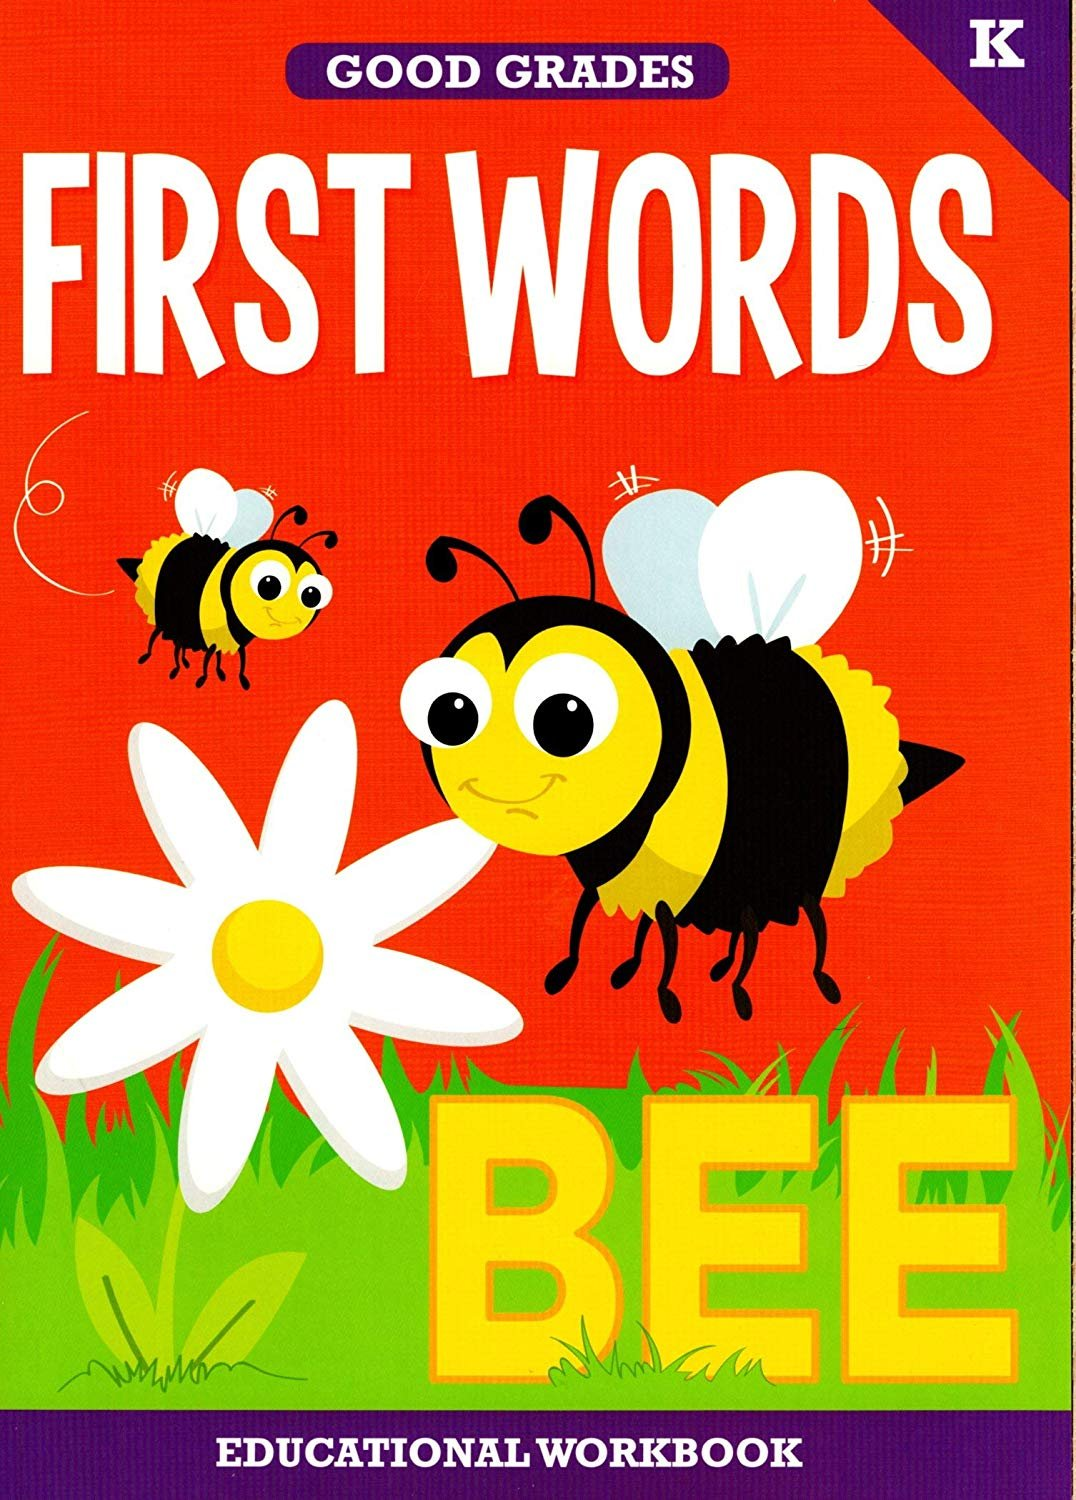 Good Grades Kindergarten Educational Workbooks First Words - v2